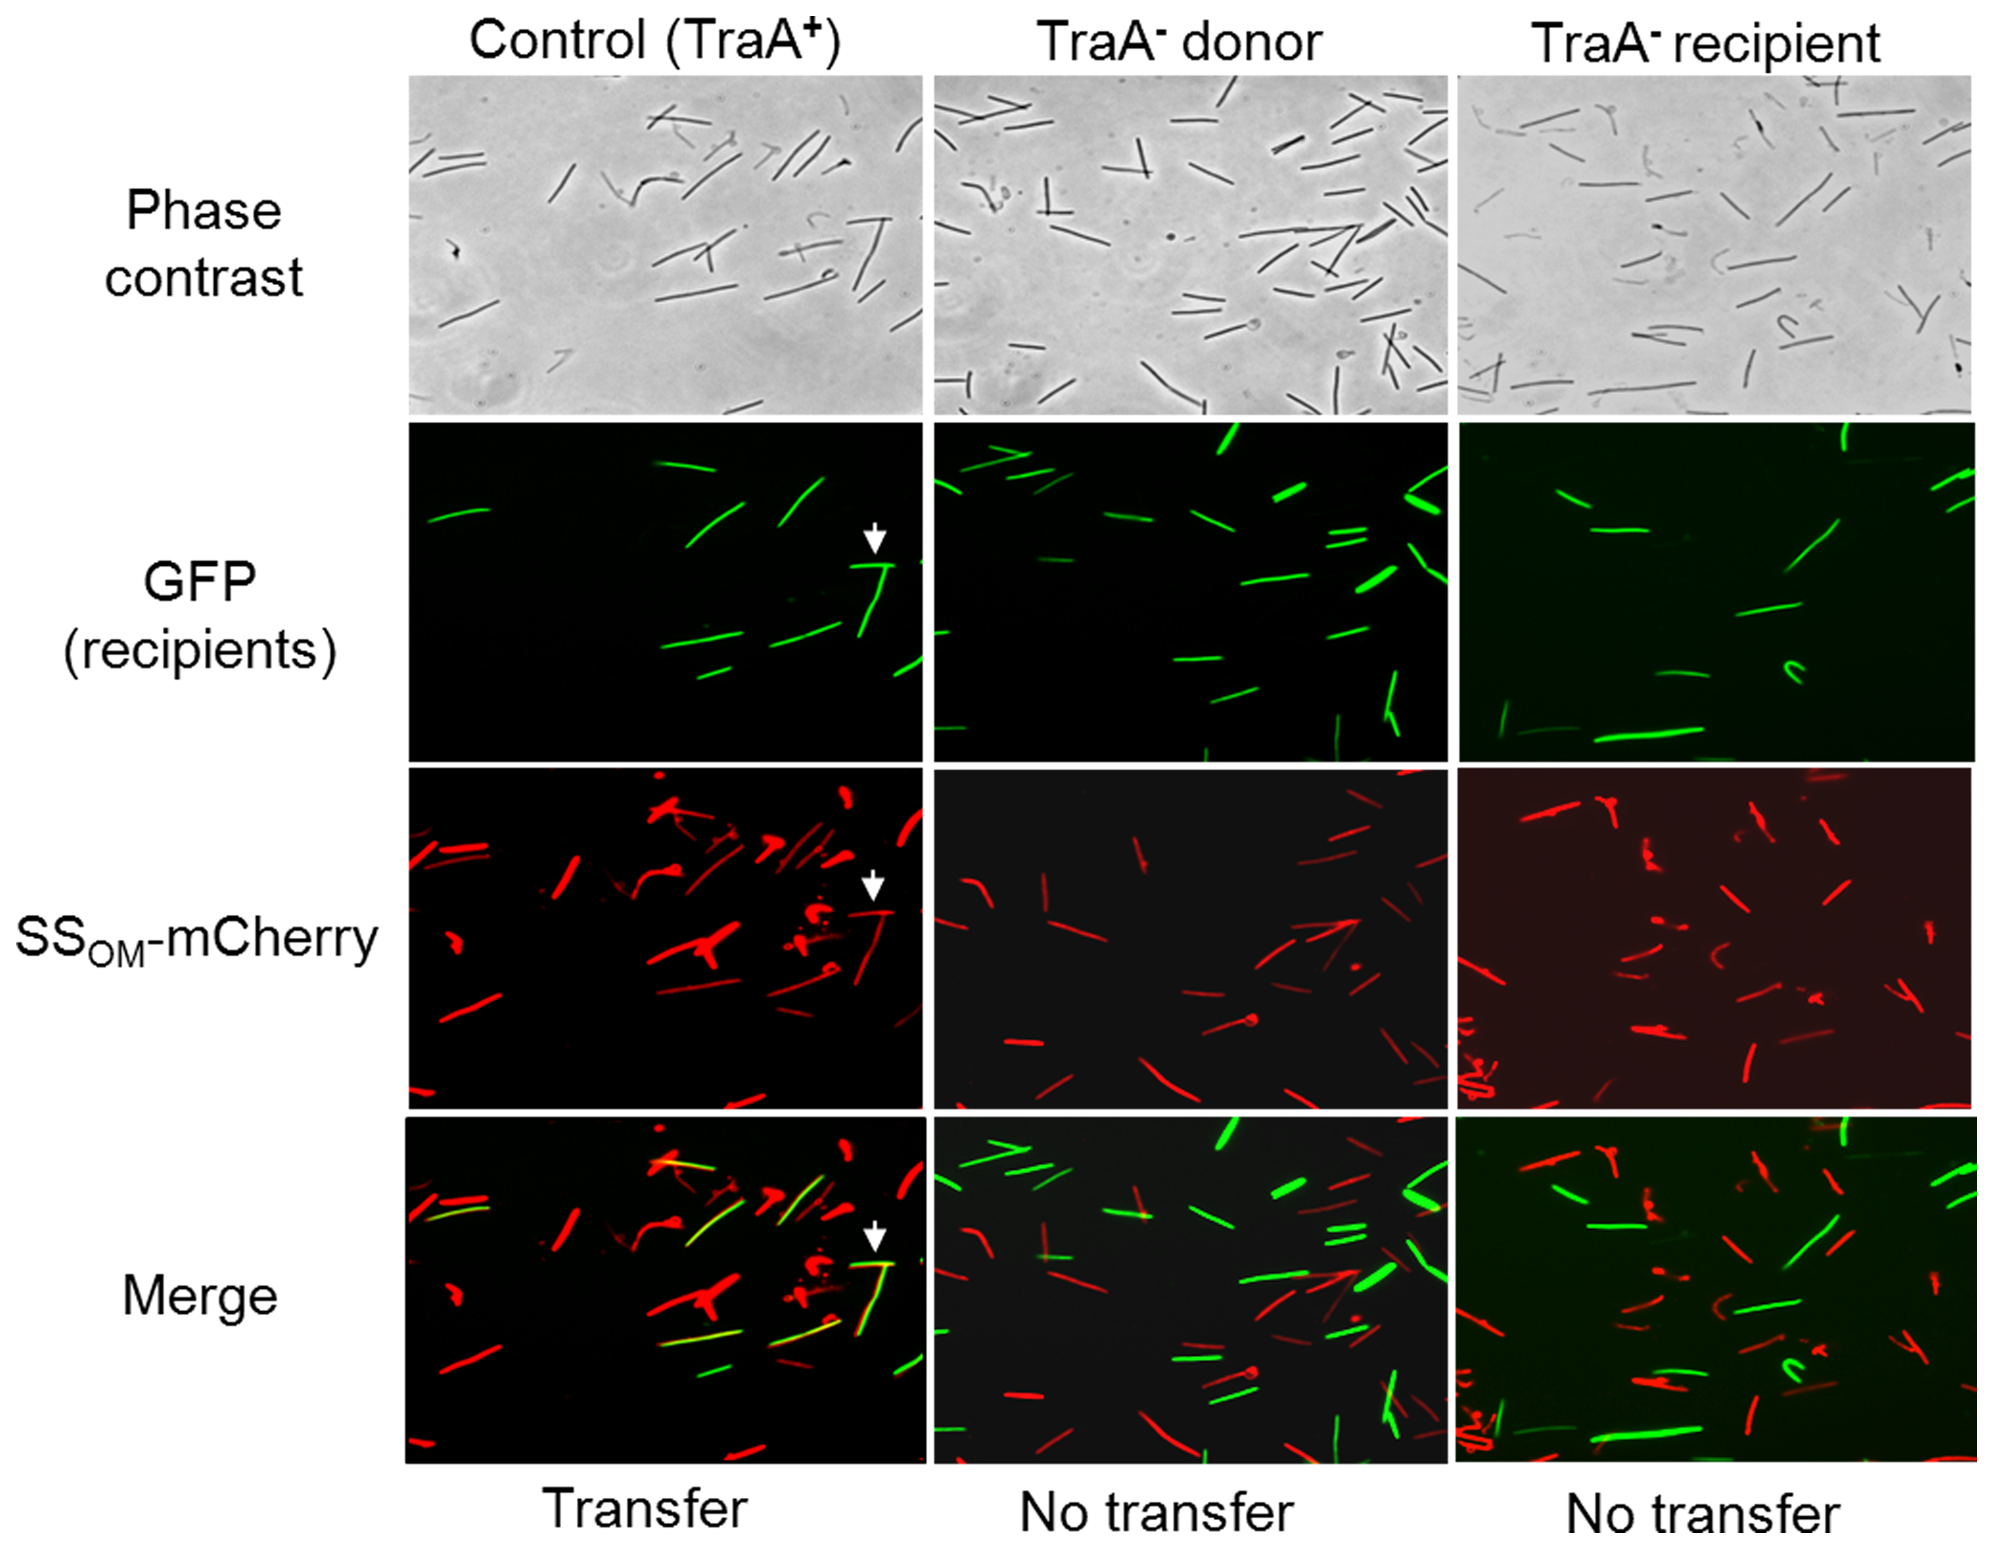 SS<sub>OM</sub>-mCherry transfer requires TraA.